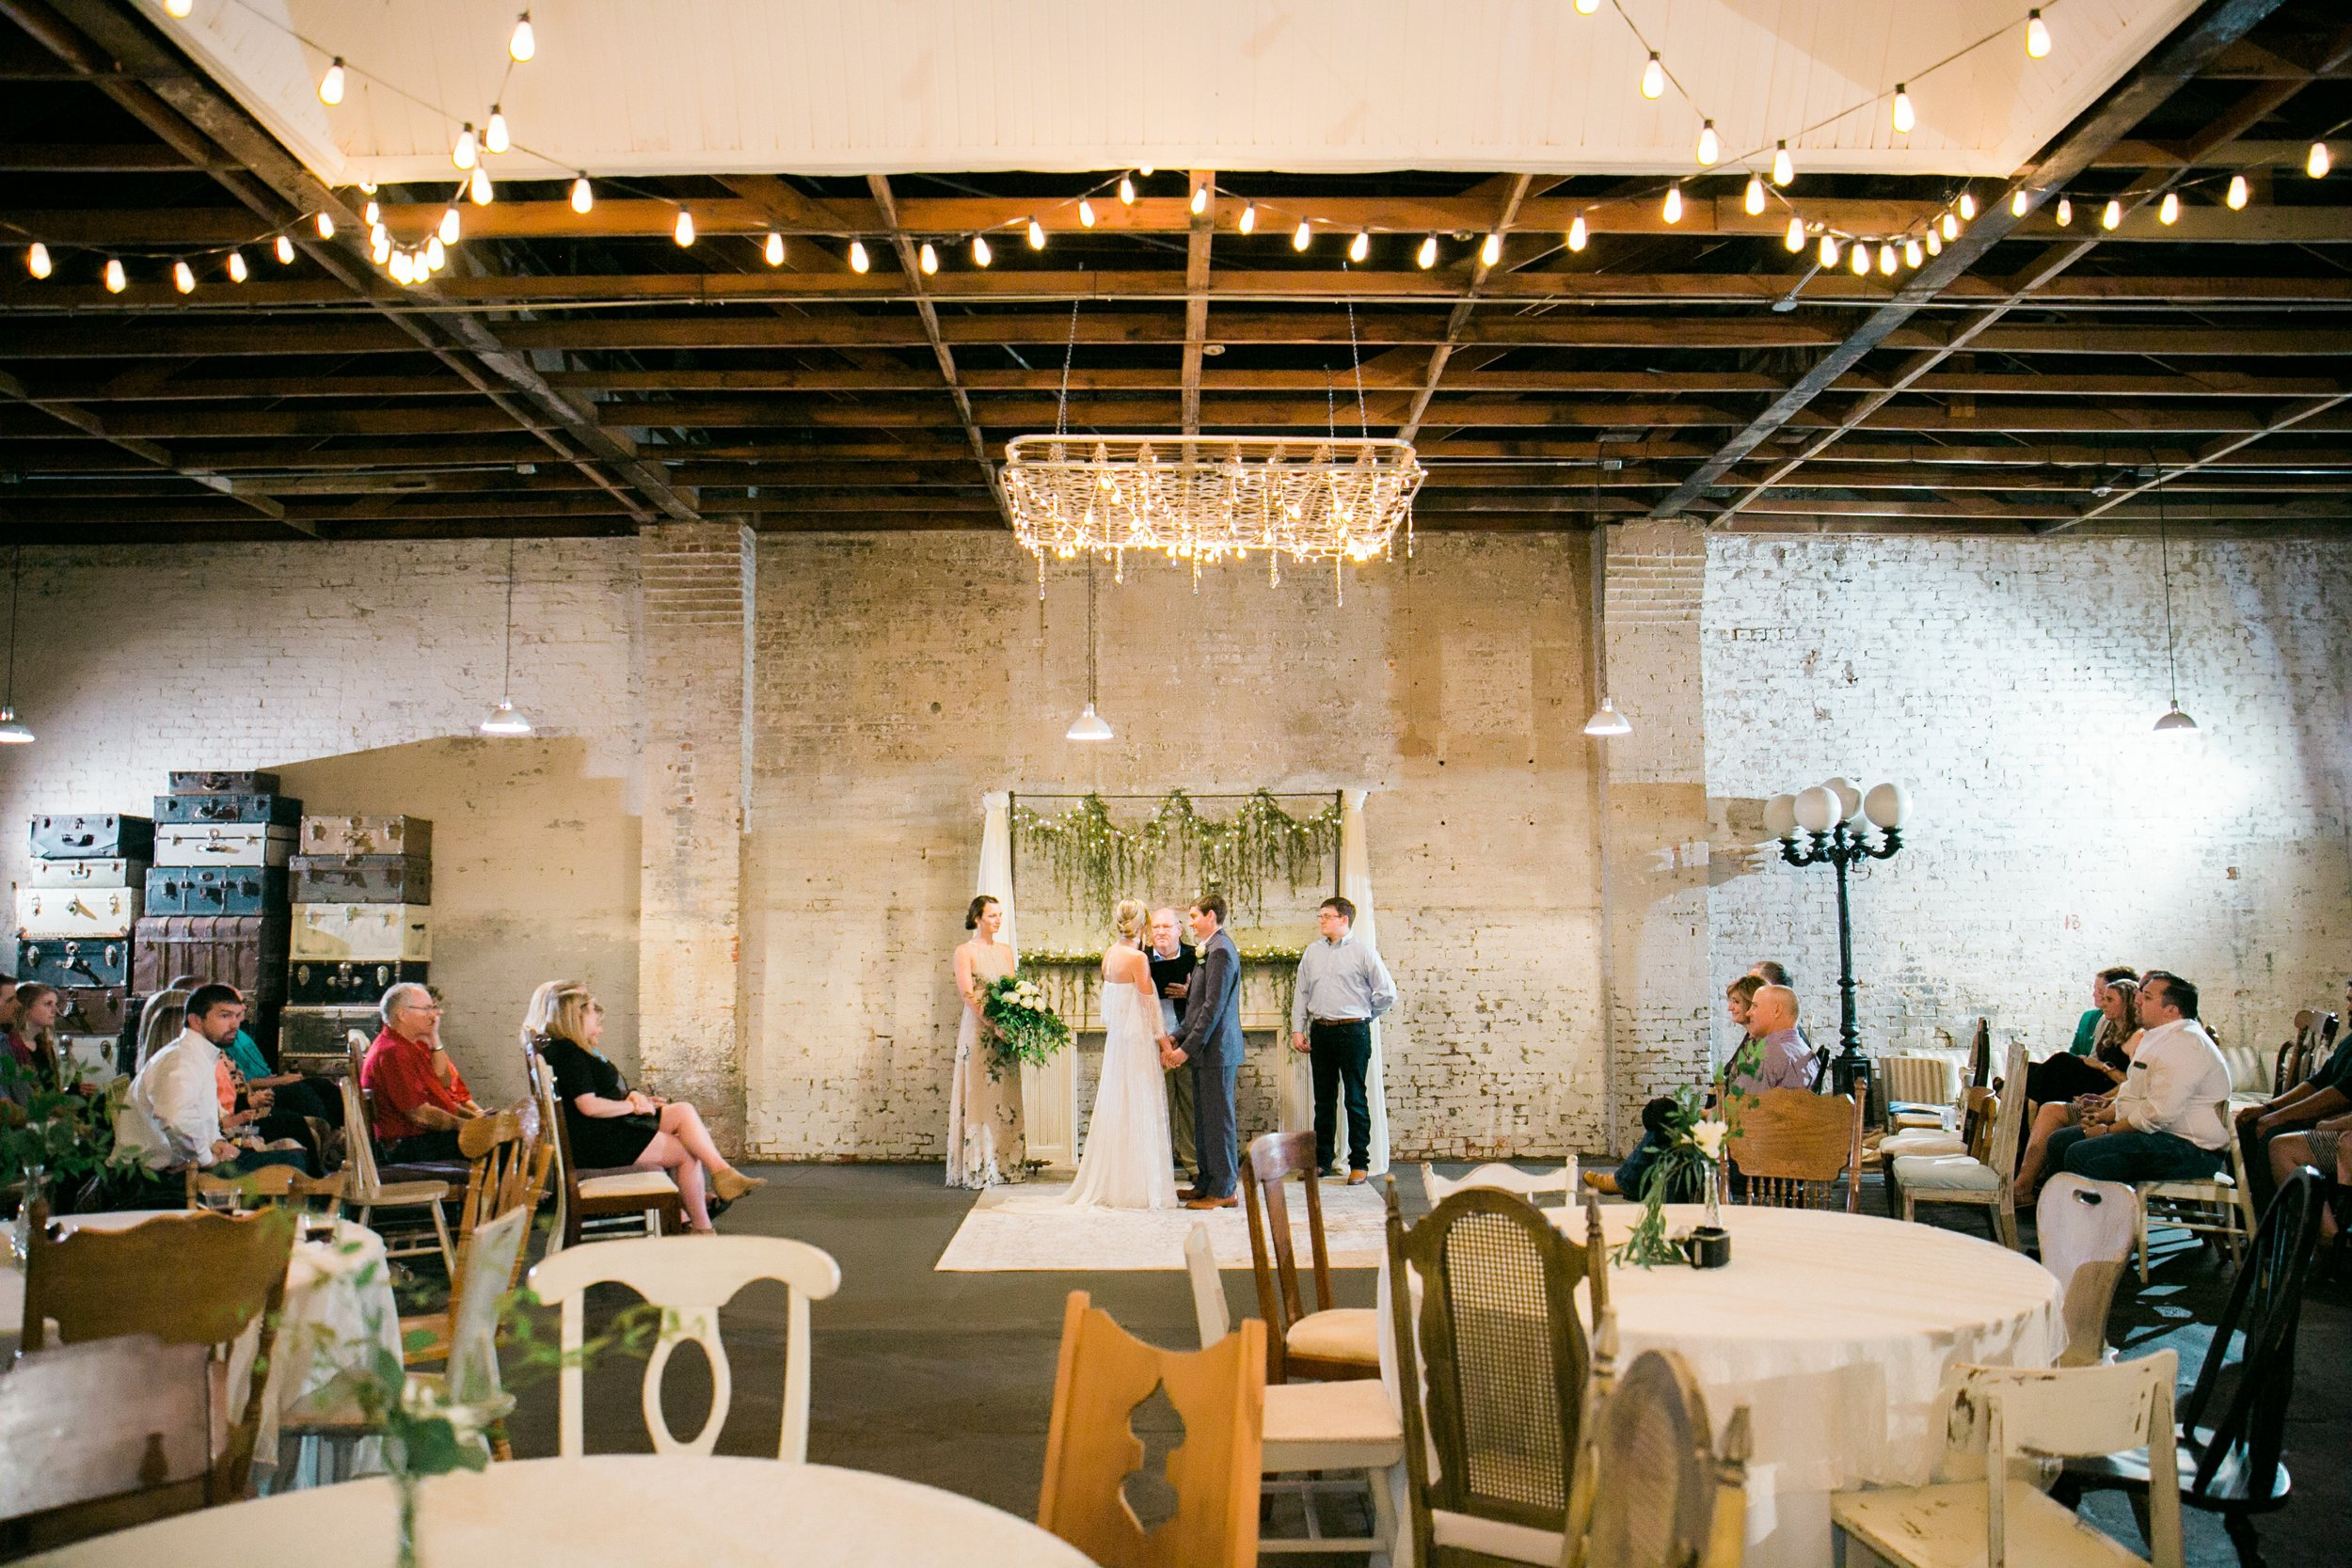 Magan-Landon-Surprise-wedding-at-southern-jeweled-warehouse-wichita-falls-texas-lauren-pinson-057.jpg